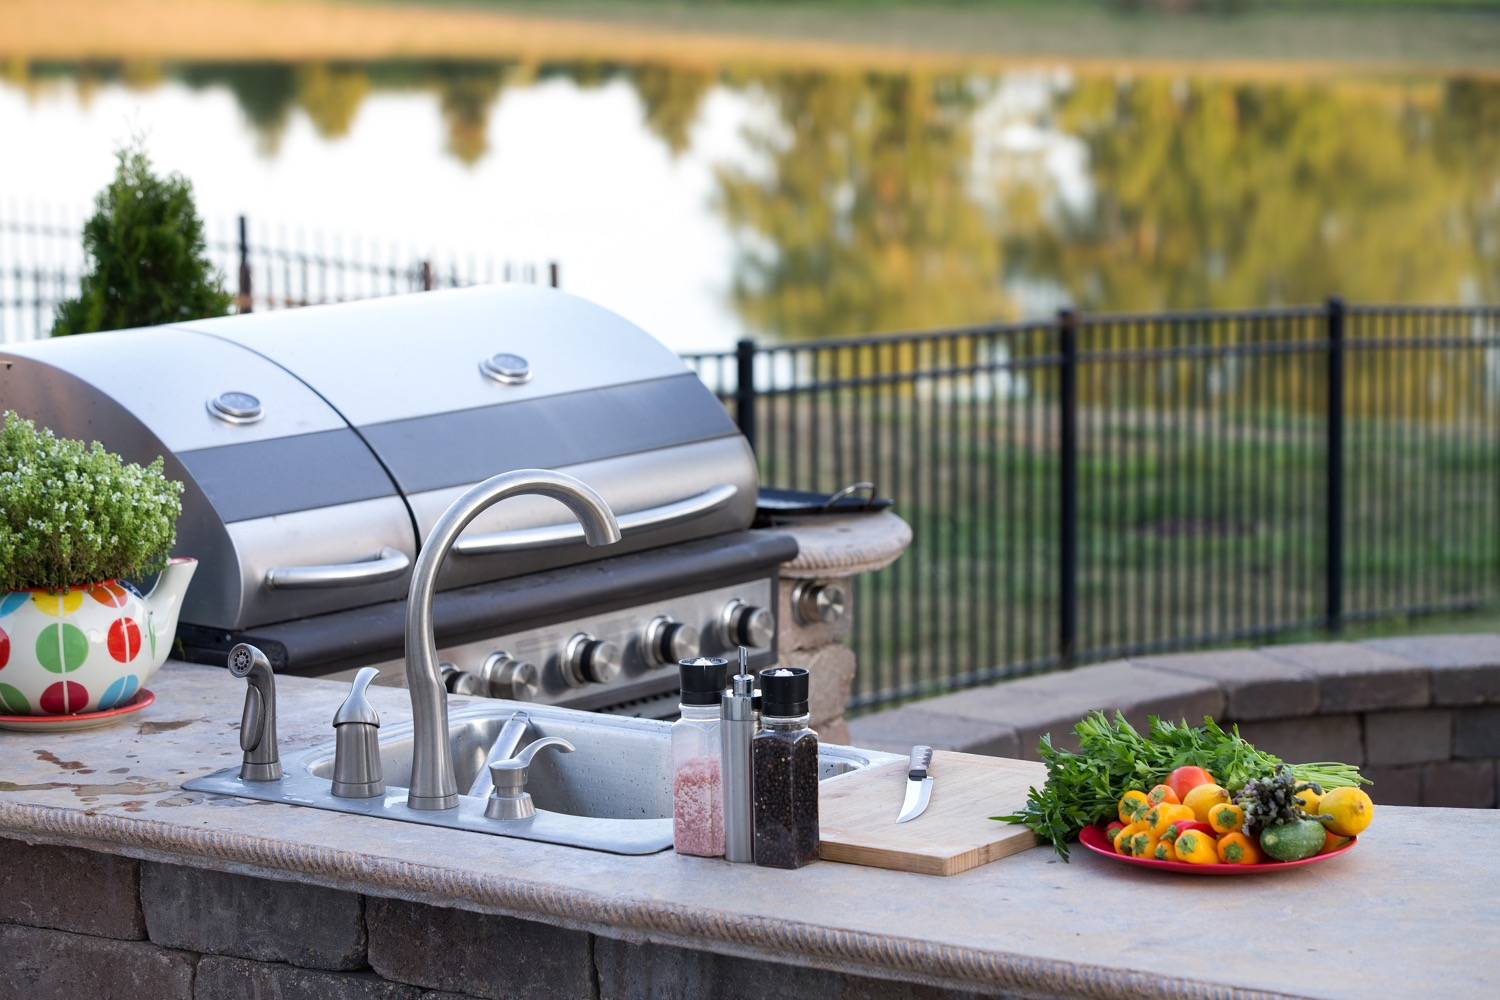 An outdoor residential kitchen with a sink and propane grill situated next to a lake.